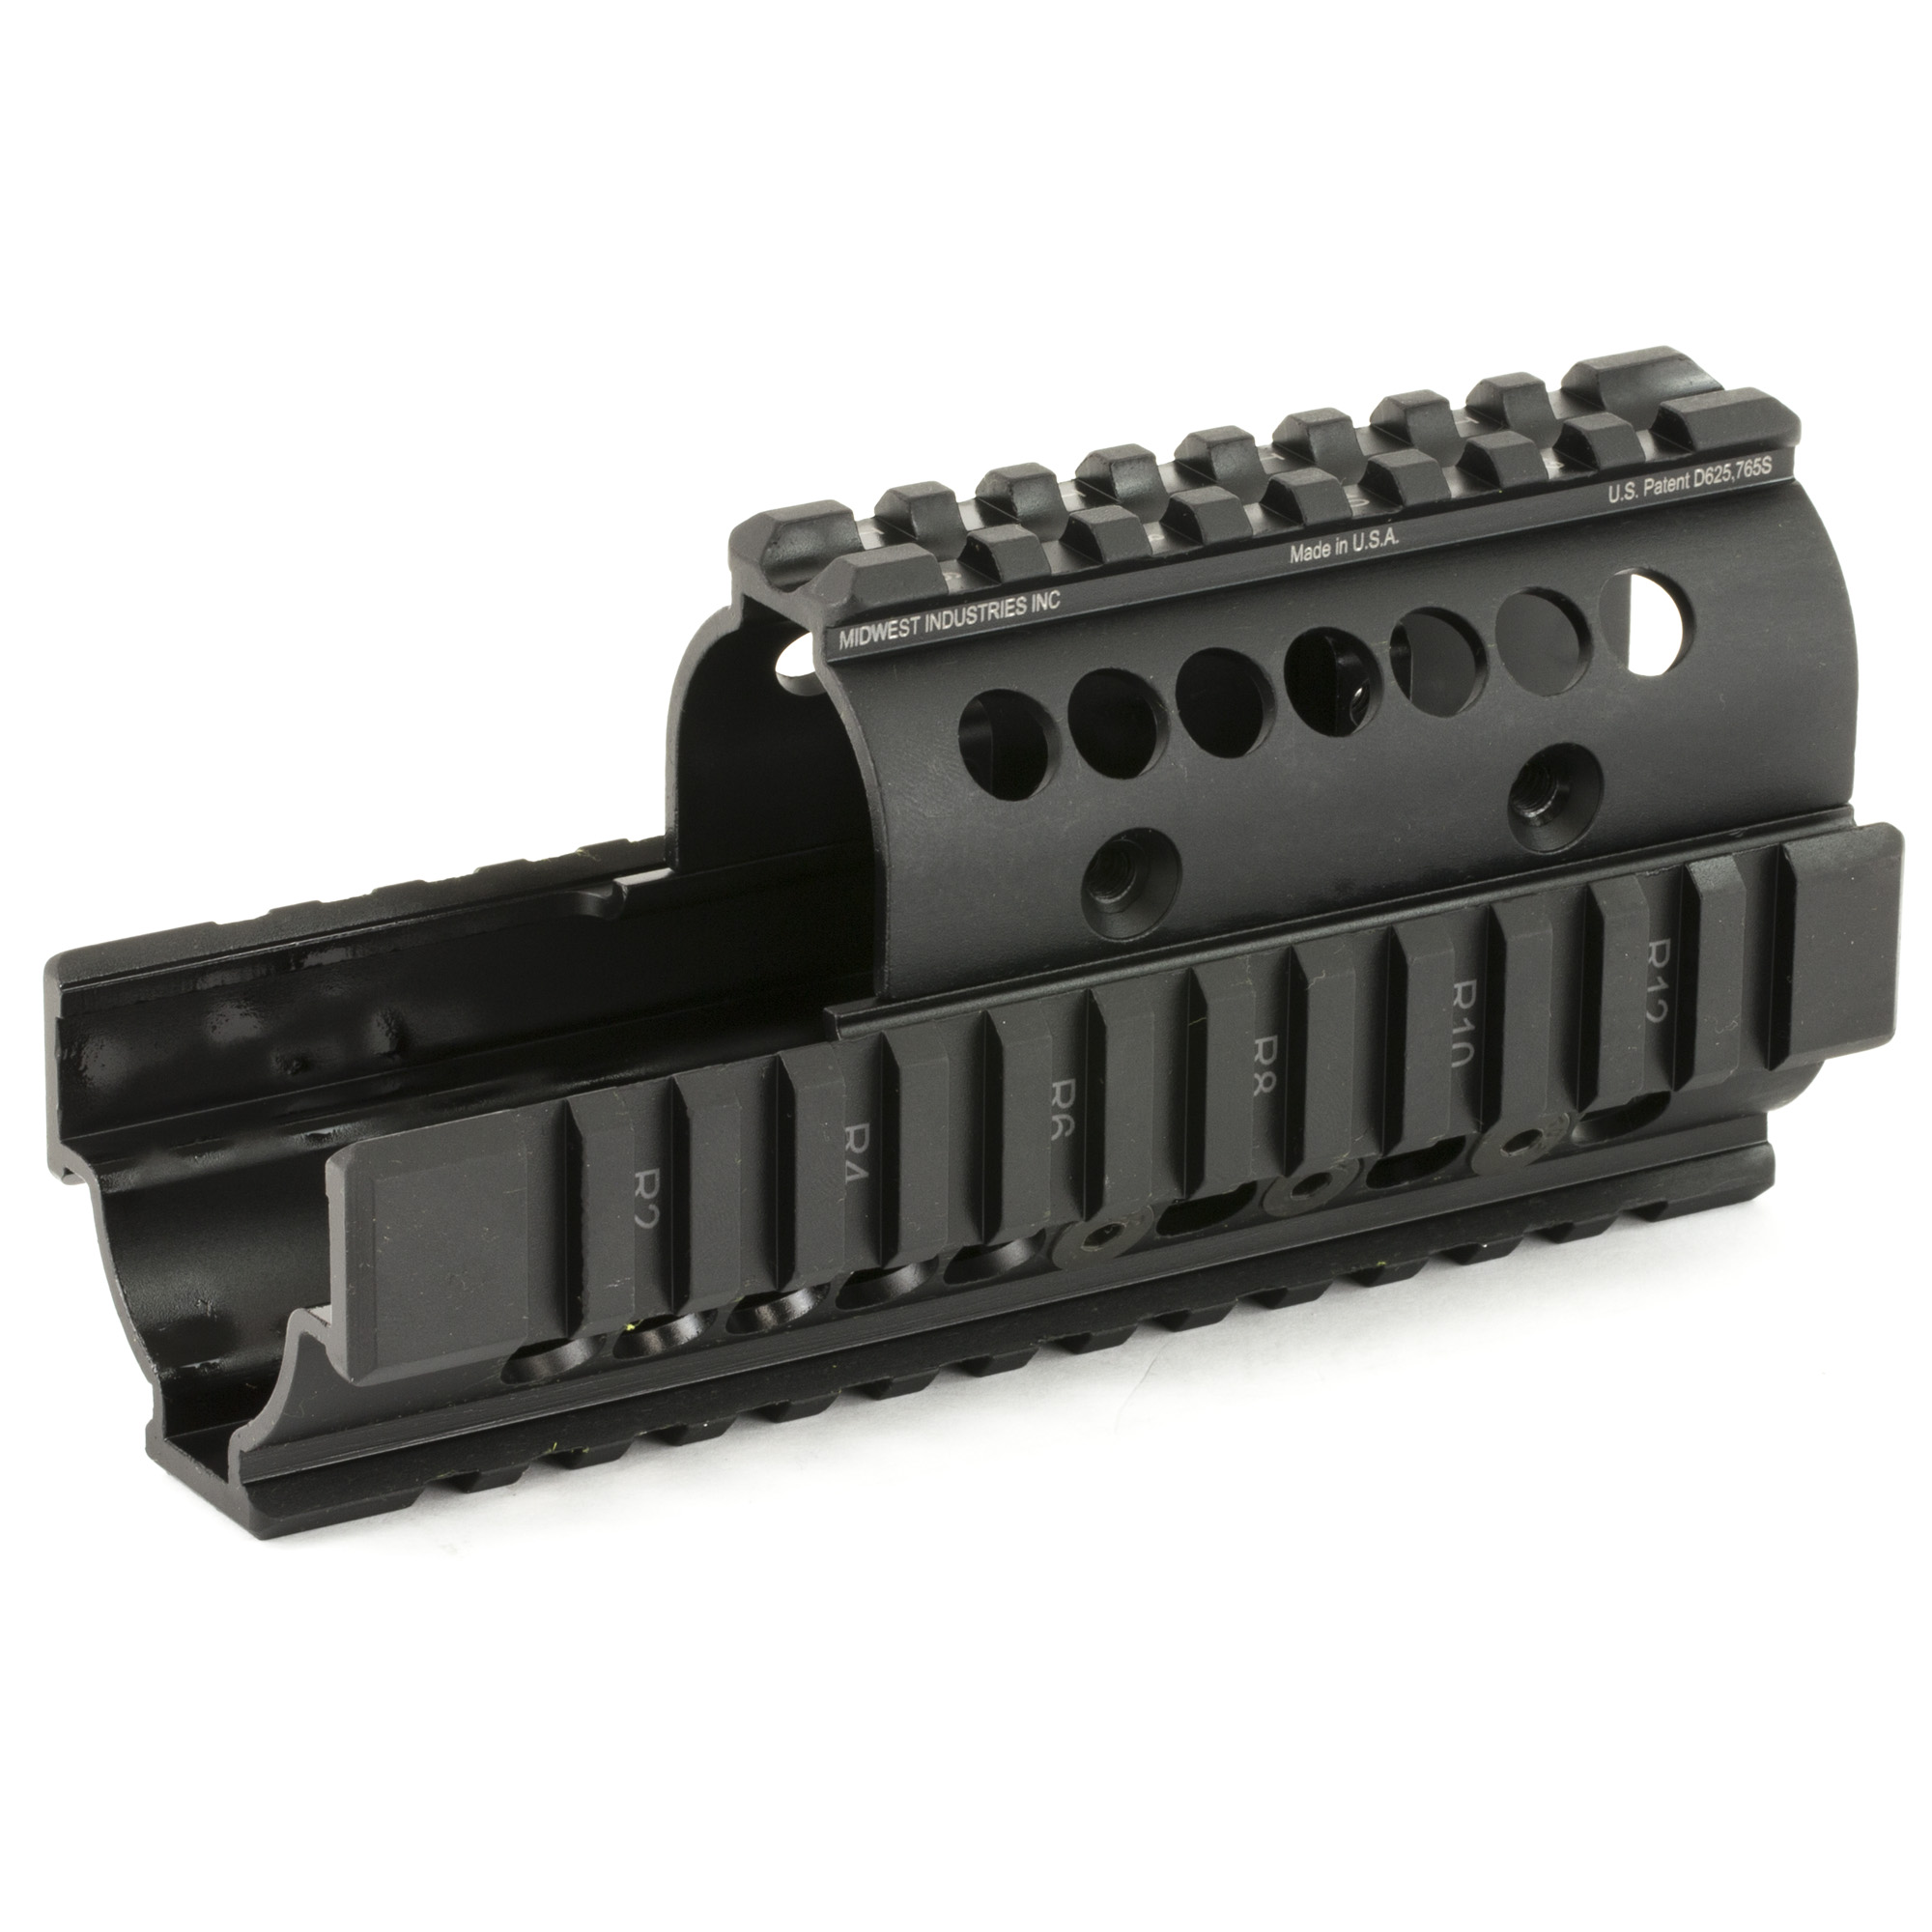 "Midwest Industries is a proven leader in the firearm industry. Made in America"" focusing on the small details to make your rifle platform better. The addition of their PLR16 handguard will allow you to add accessories that you want and to the small compact rifle package. This Kel-Tec PLR16 4-Rail Handguard has high quality T-marked mil-spec 1913 rails for lights"" lasers and optics. Installs in minutes using nothing but the wrenches that come in the kit."